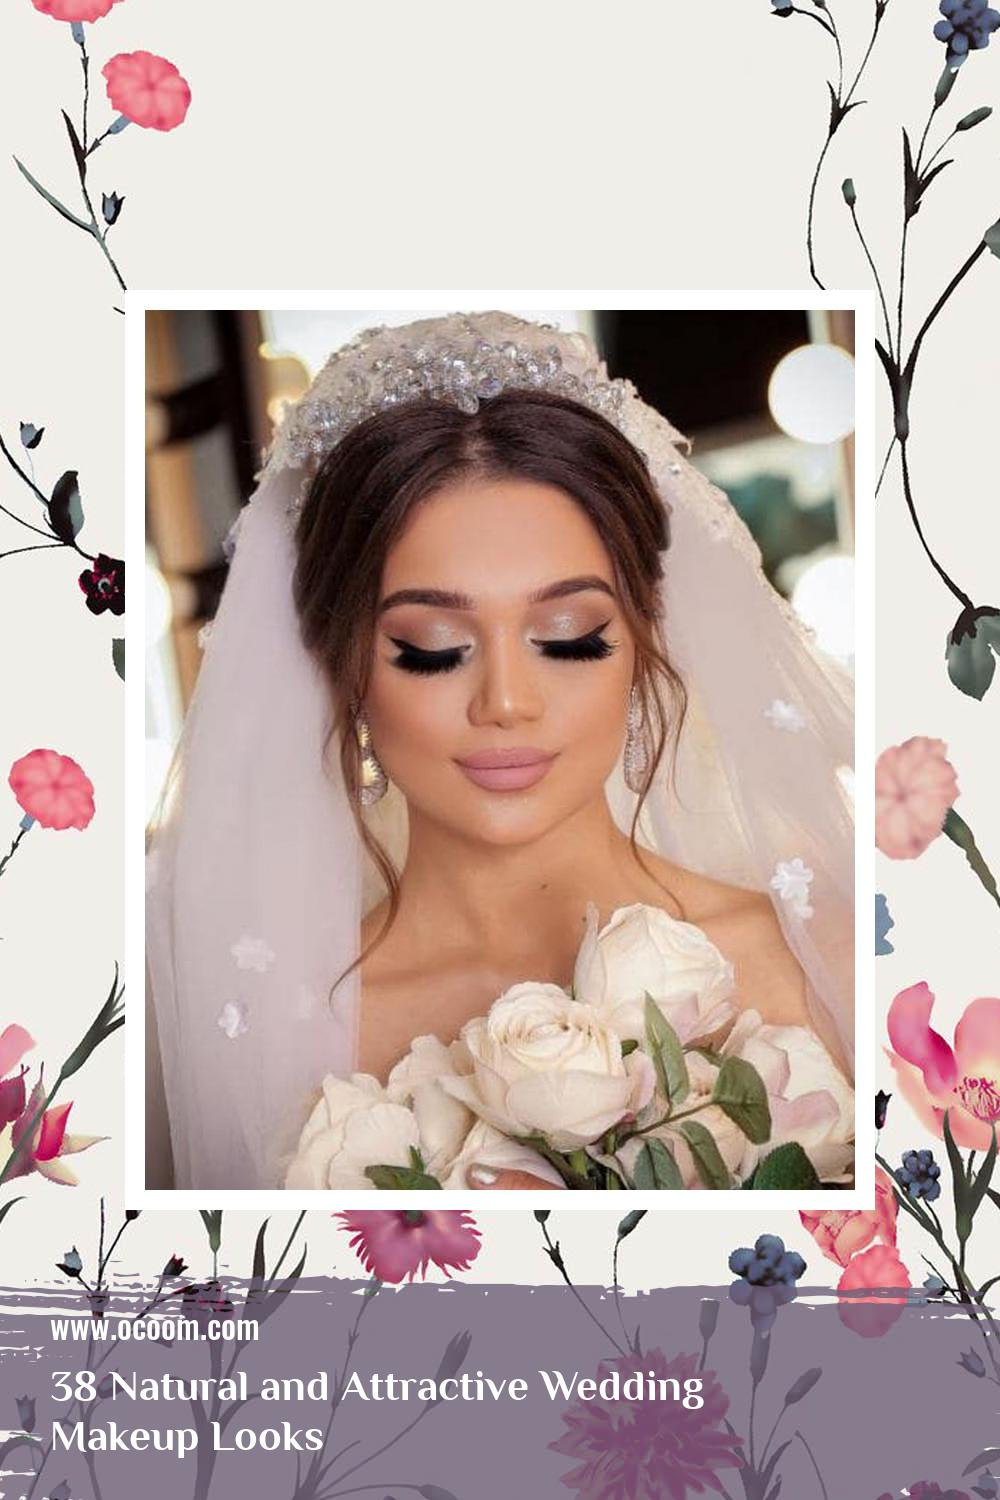 38 Natural and Attractive Wedding Makeup Looks 34